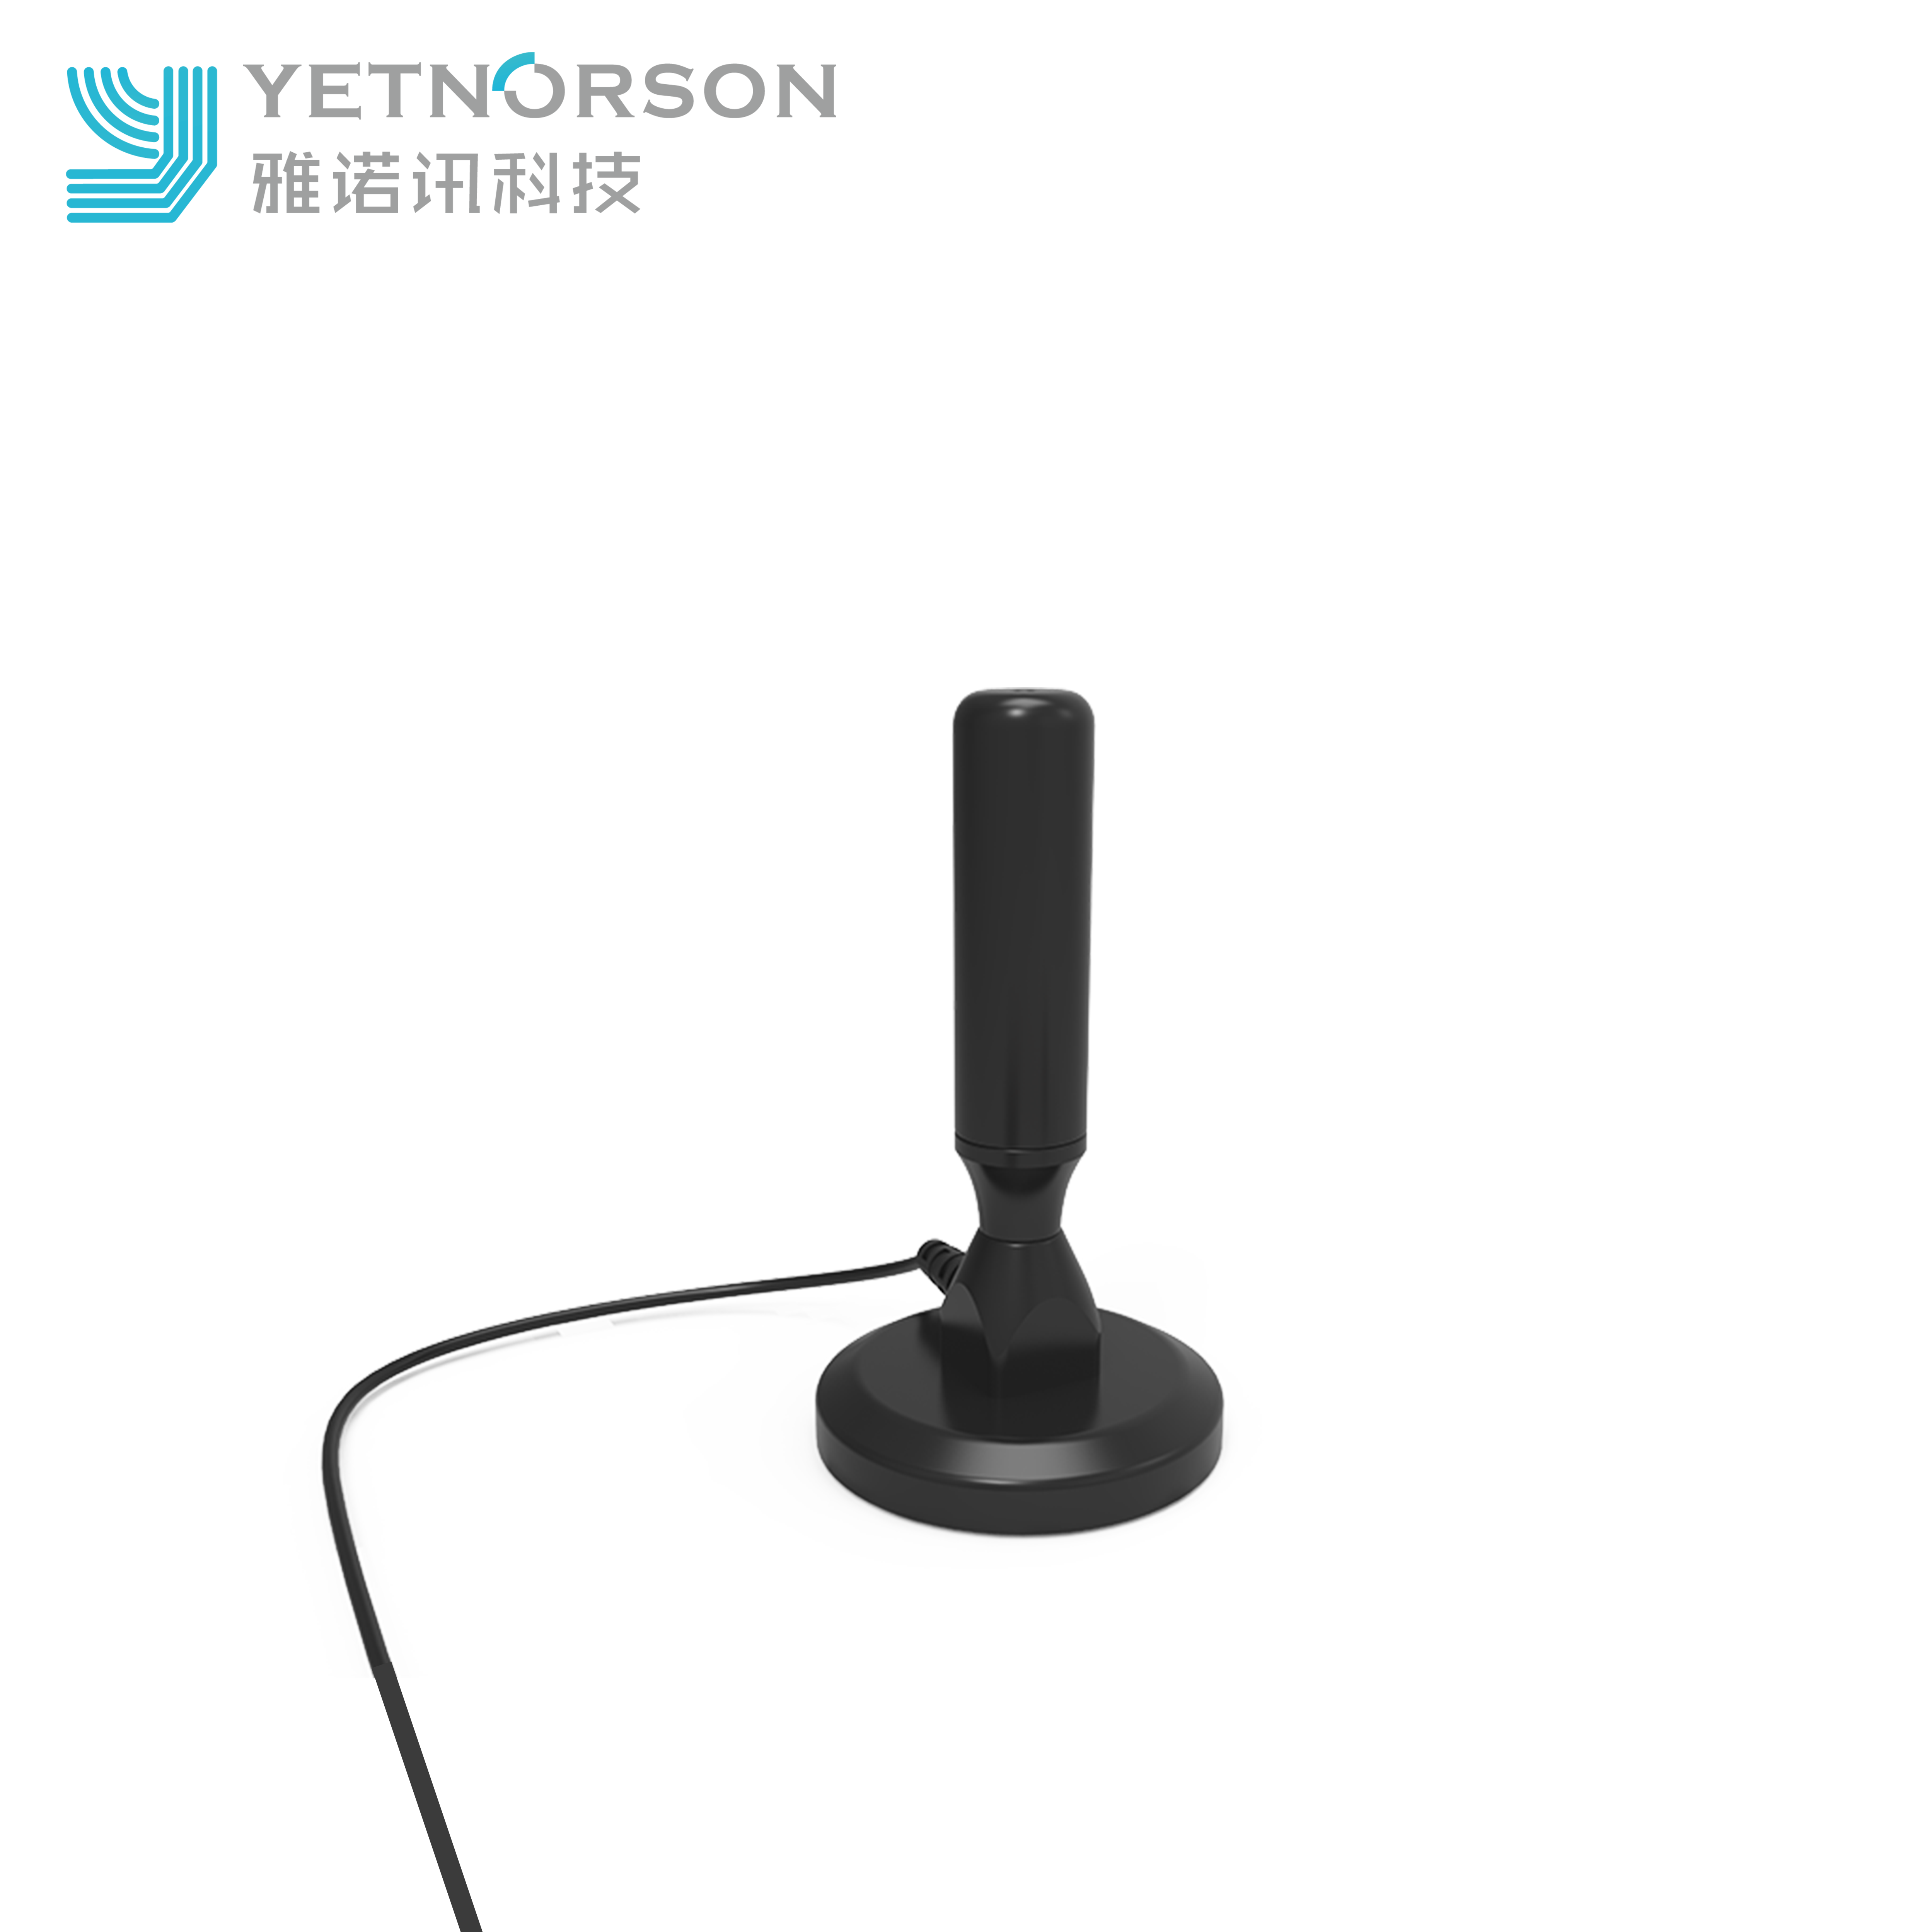 TVAntenna With Magnetic Base